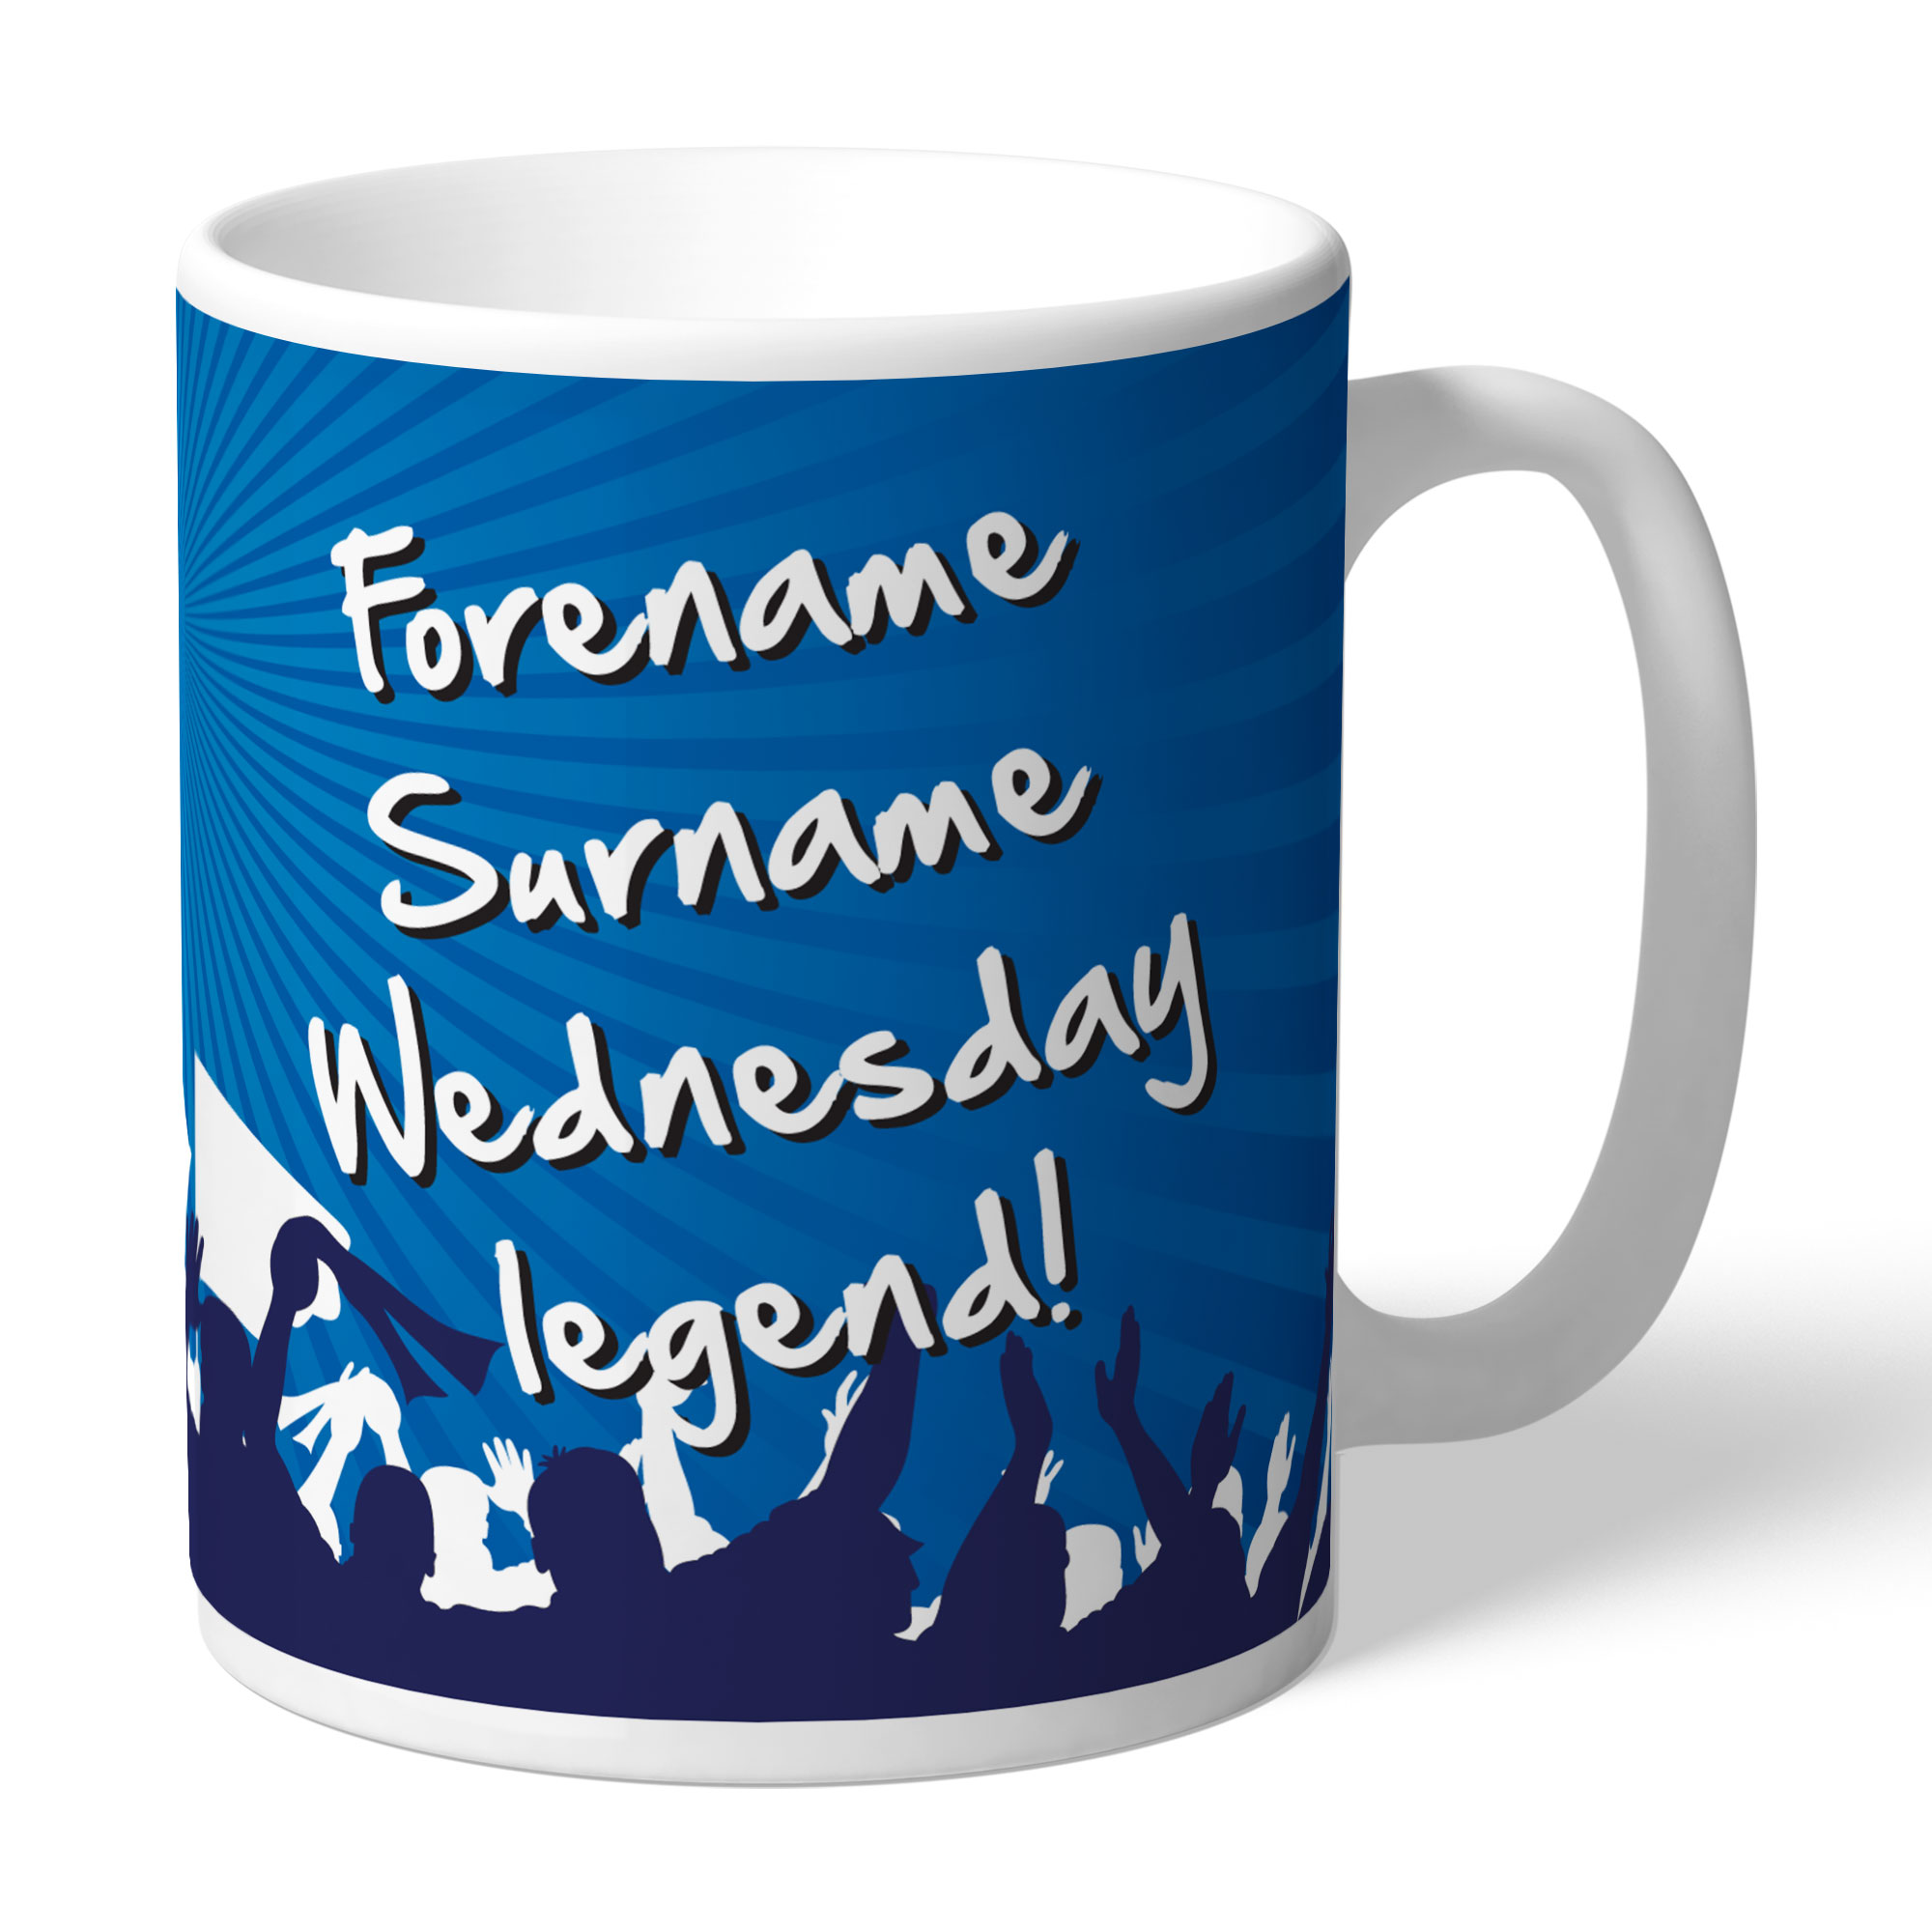 Sheffield Wednesday FC Legend Mug